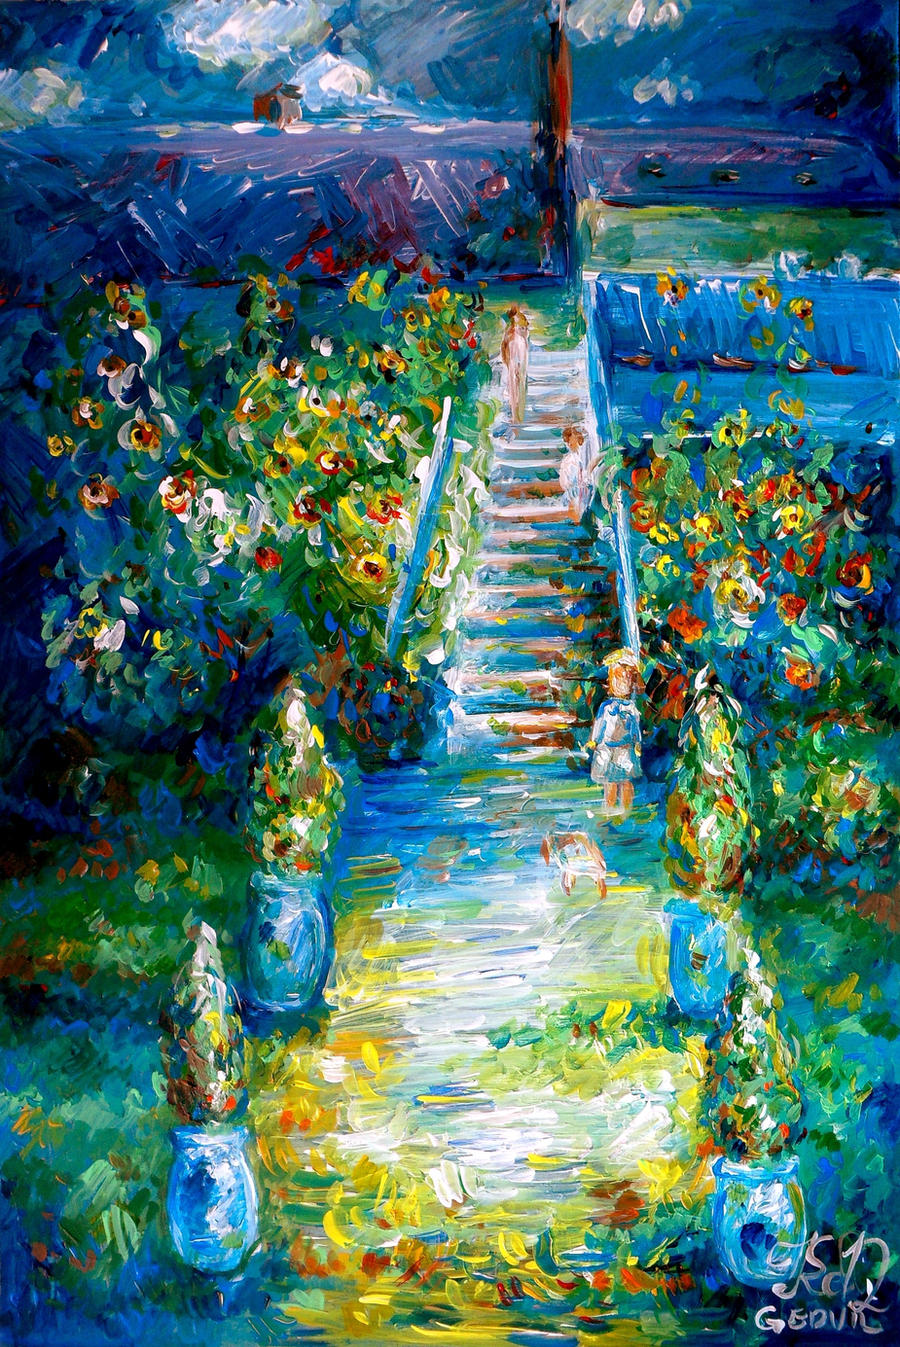 Claude monet paintings analysis essay